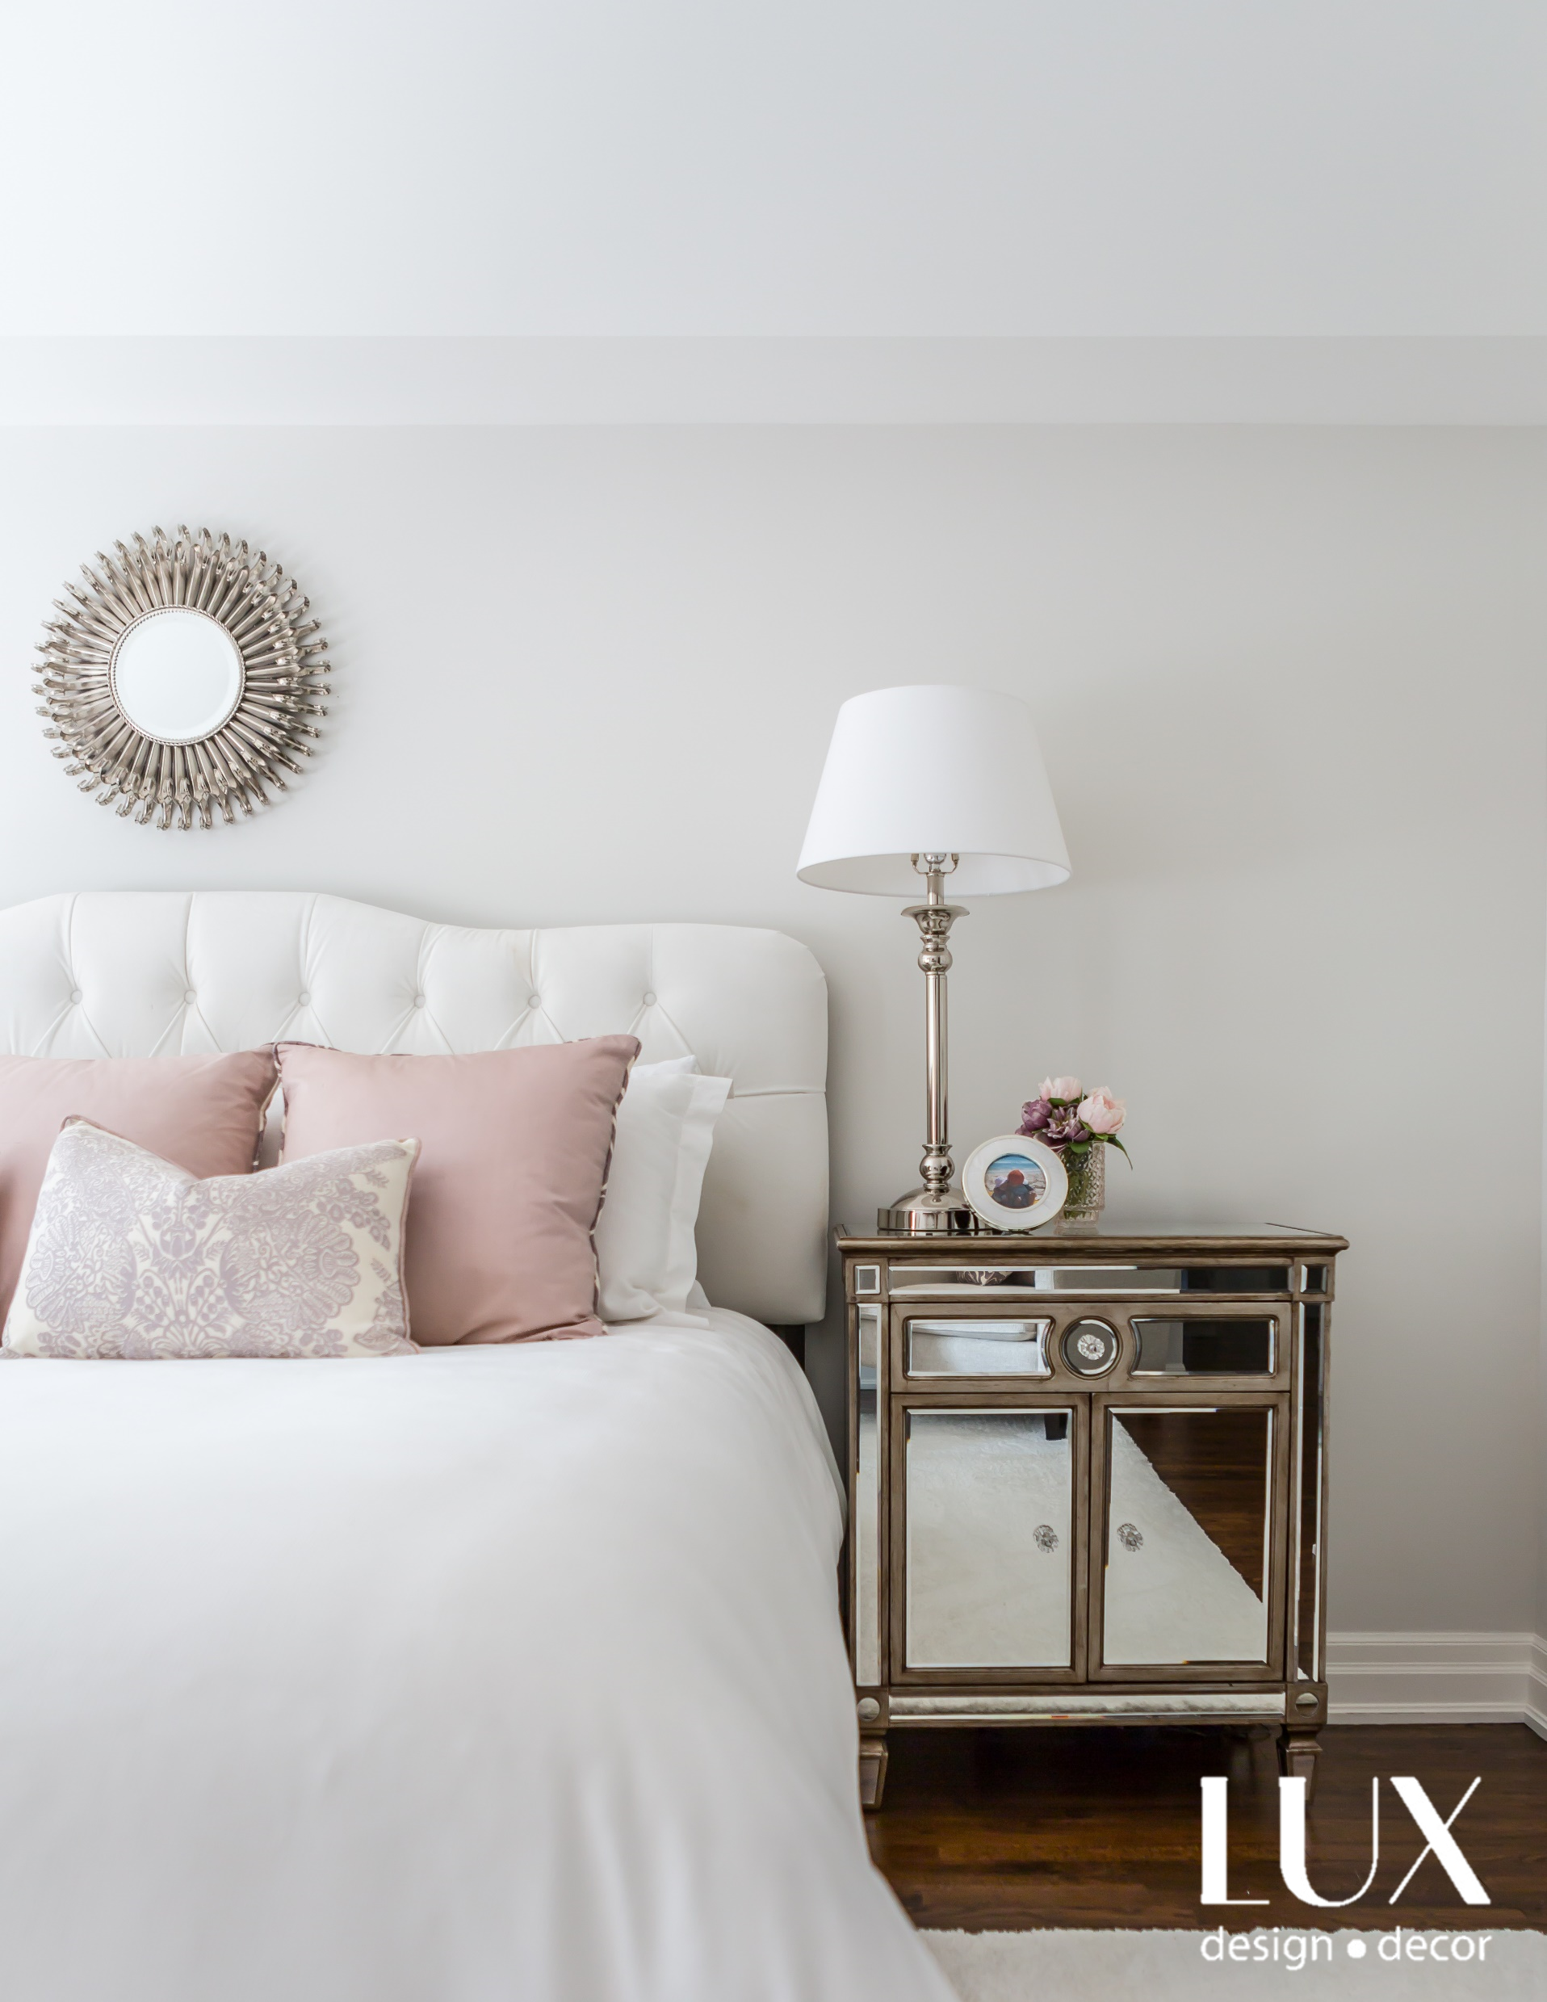 Decor in a beautiful transitional LUX style